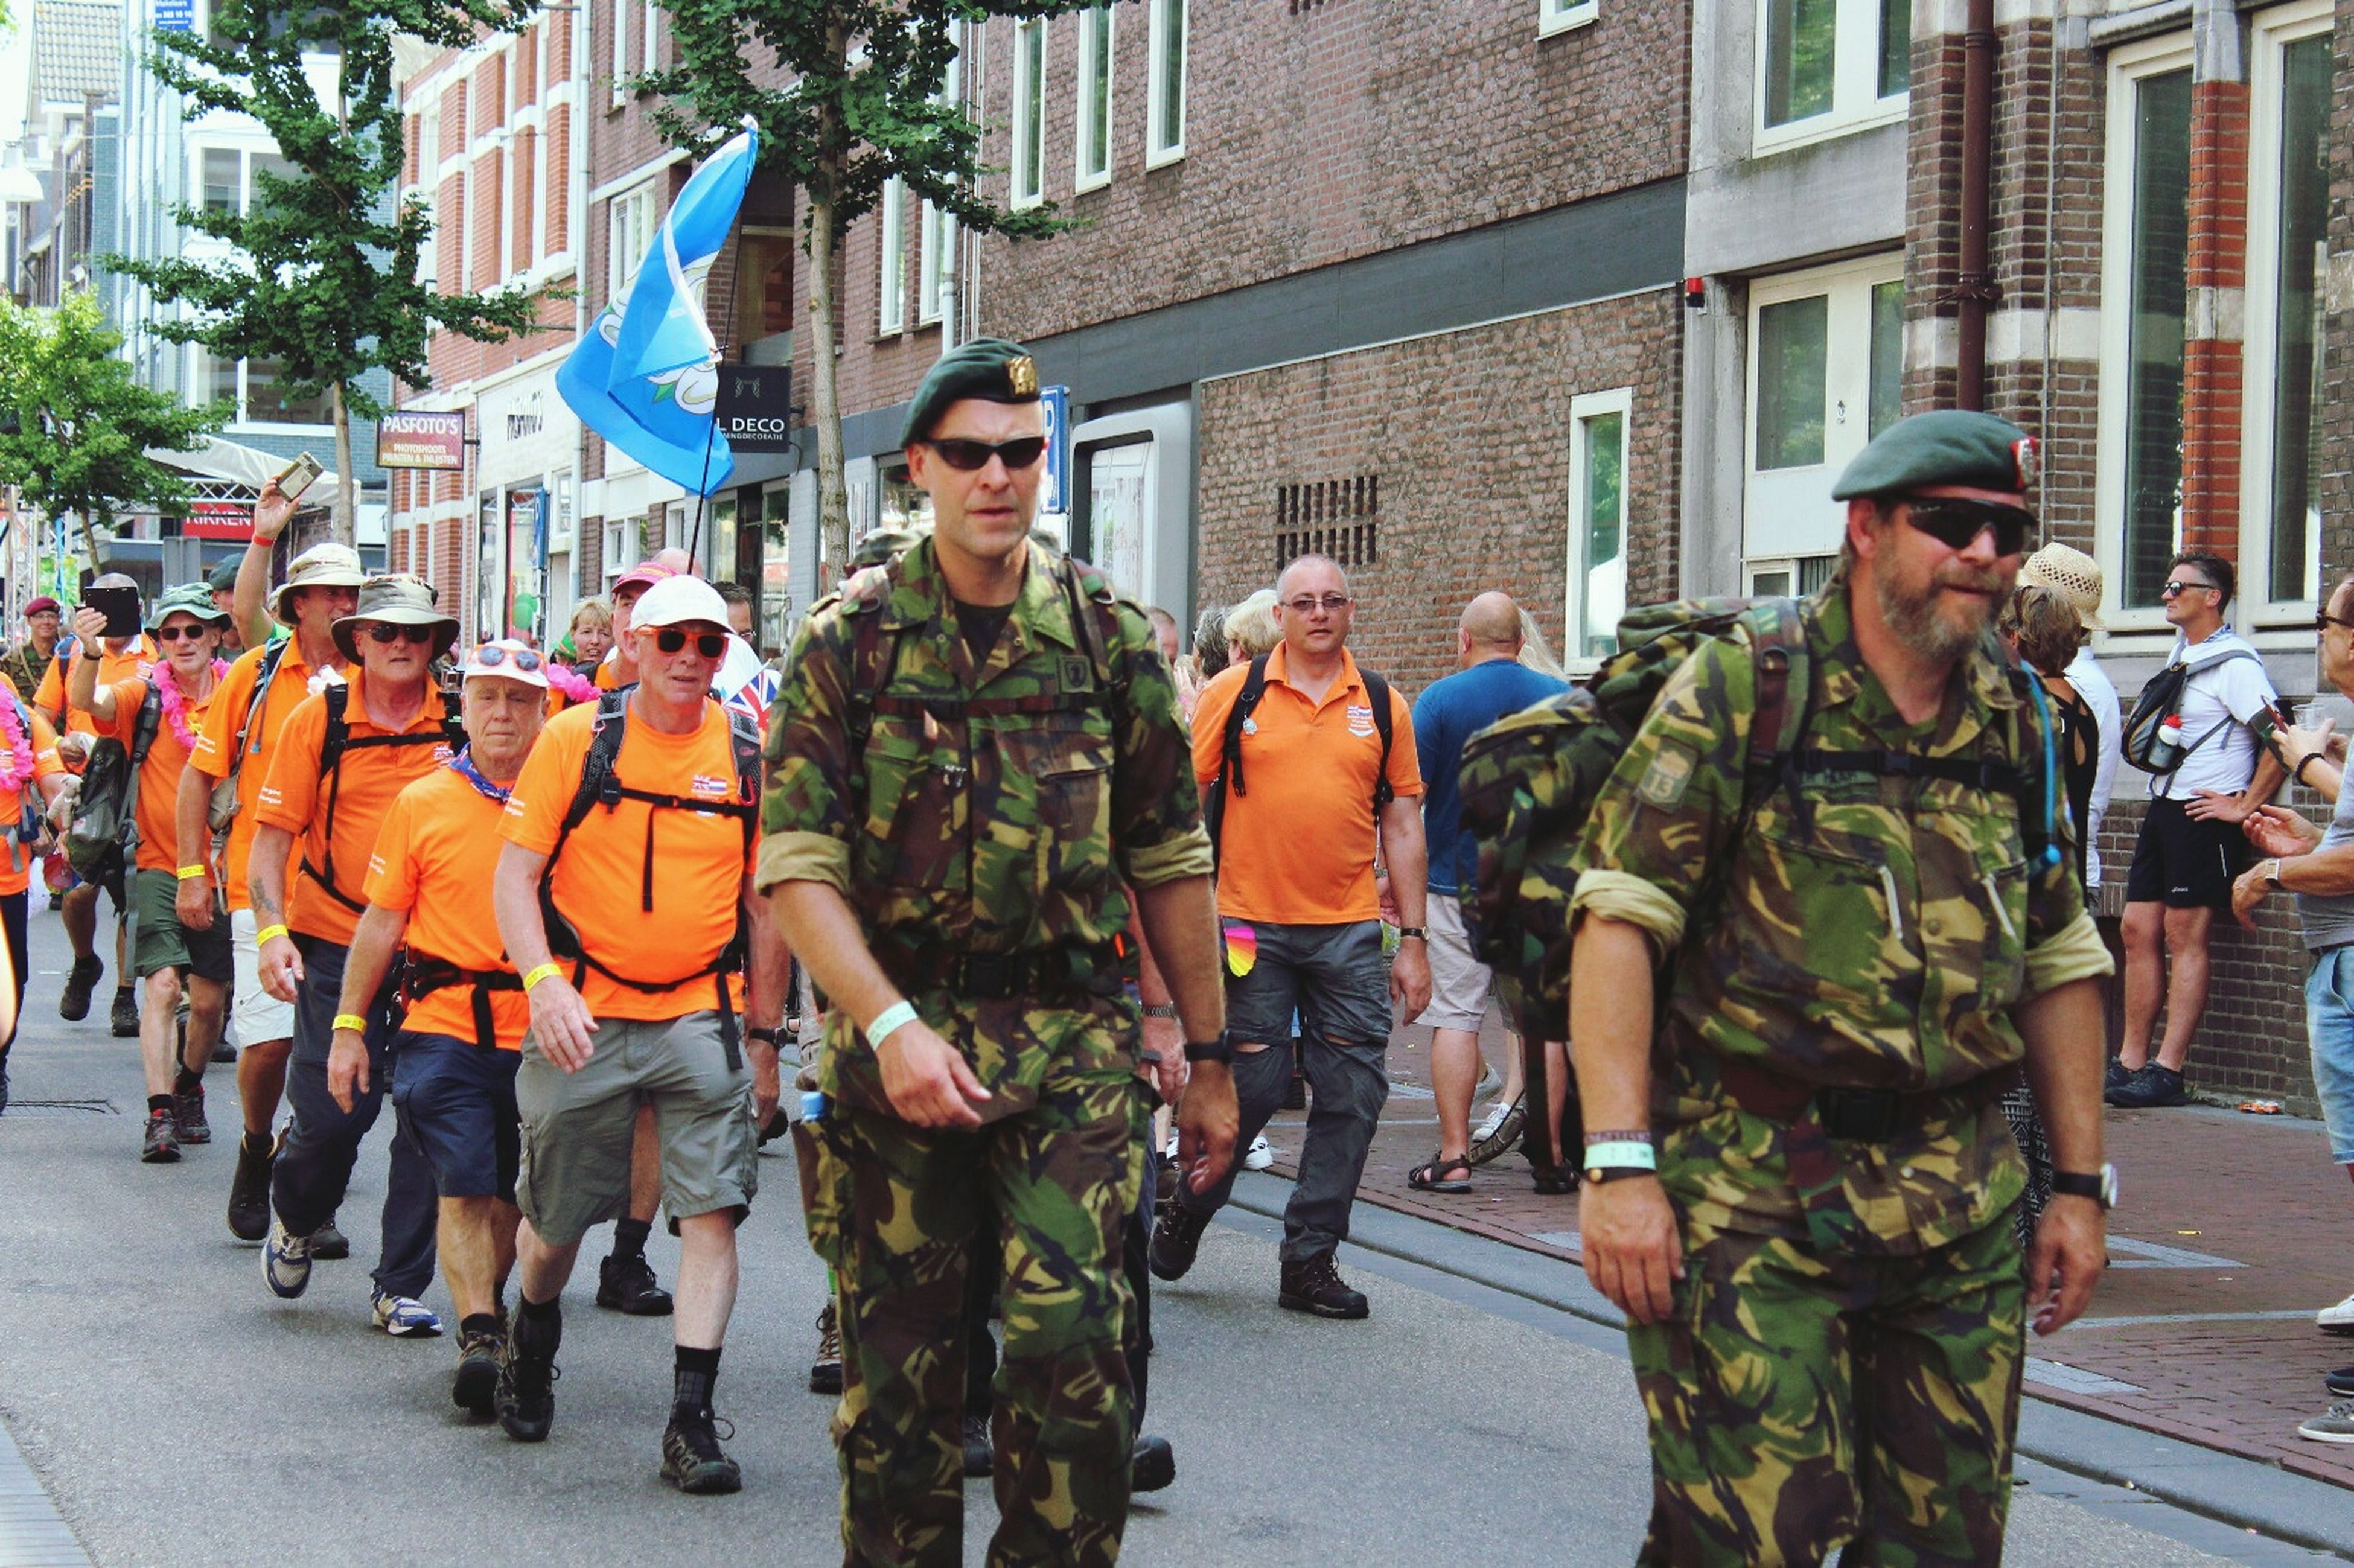 mid adult, mid adult men, building exterior, men, medium group of people, city, street, adult, women, mature adult, day, architecture, standing, built structure, group of people, full length, outdoors, uniform, police force, people, real people, togetherness, adults only, reflective clothing, young adult, only men, camouflage clothing